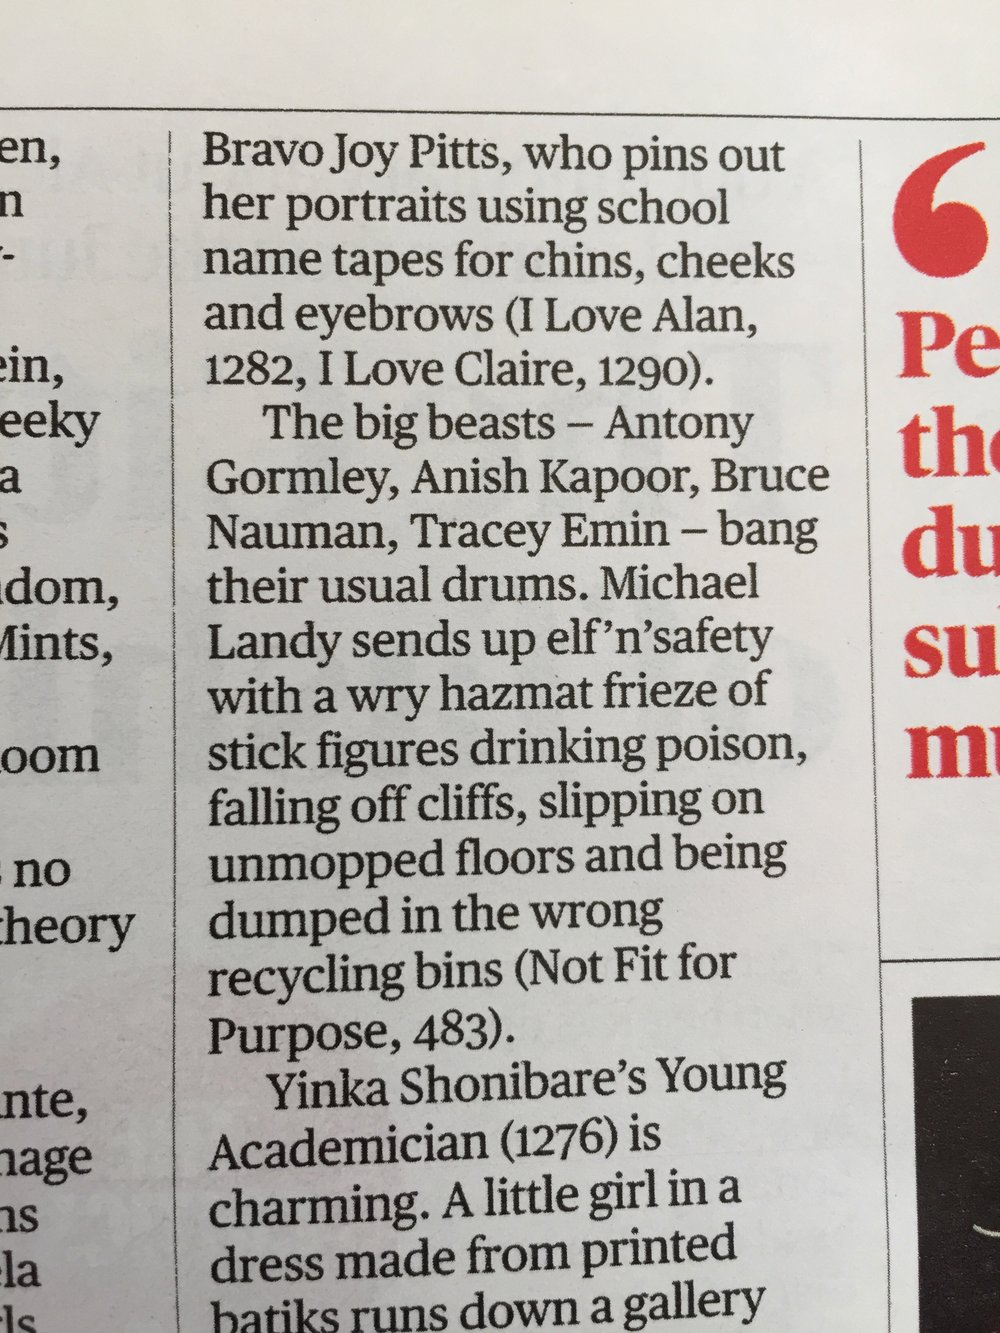 This was a review in The Times Culture magazine about The Royal Academy Summer Exhibition, page 11 on 10th June 2018 written by Laura Freeman.